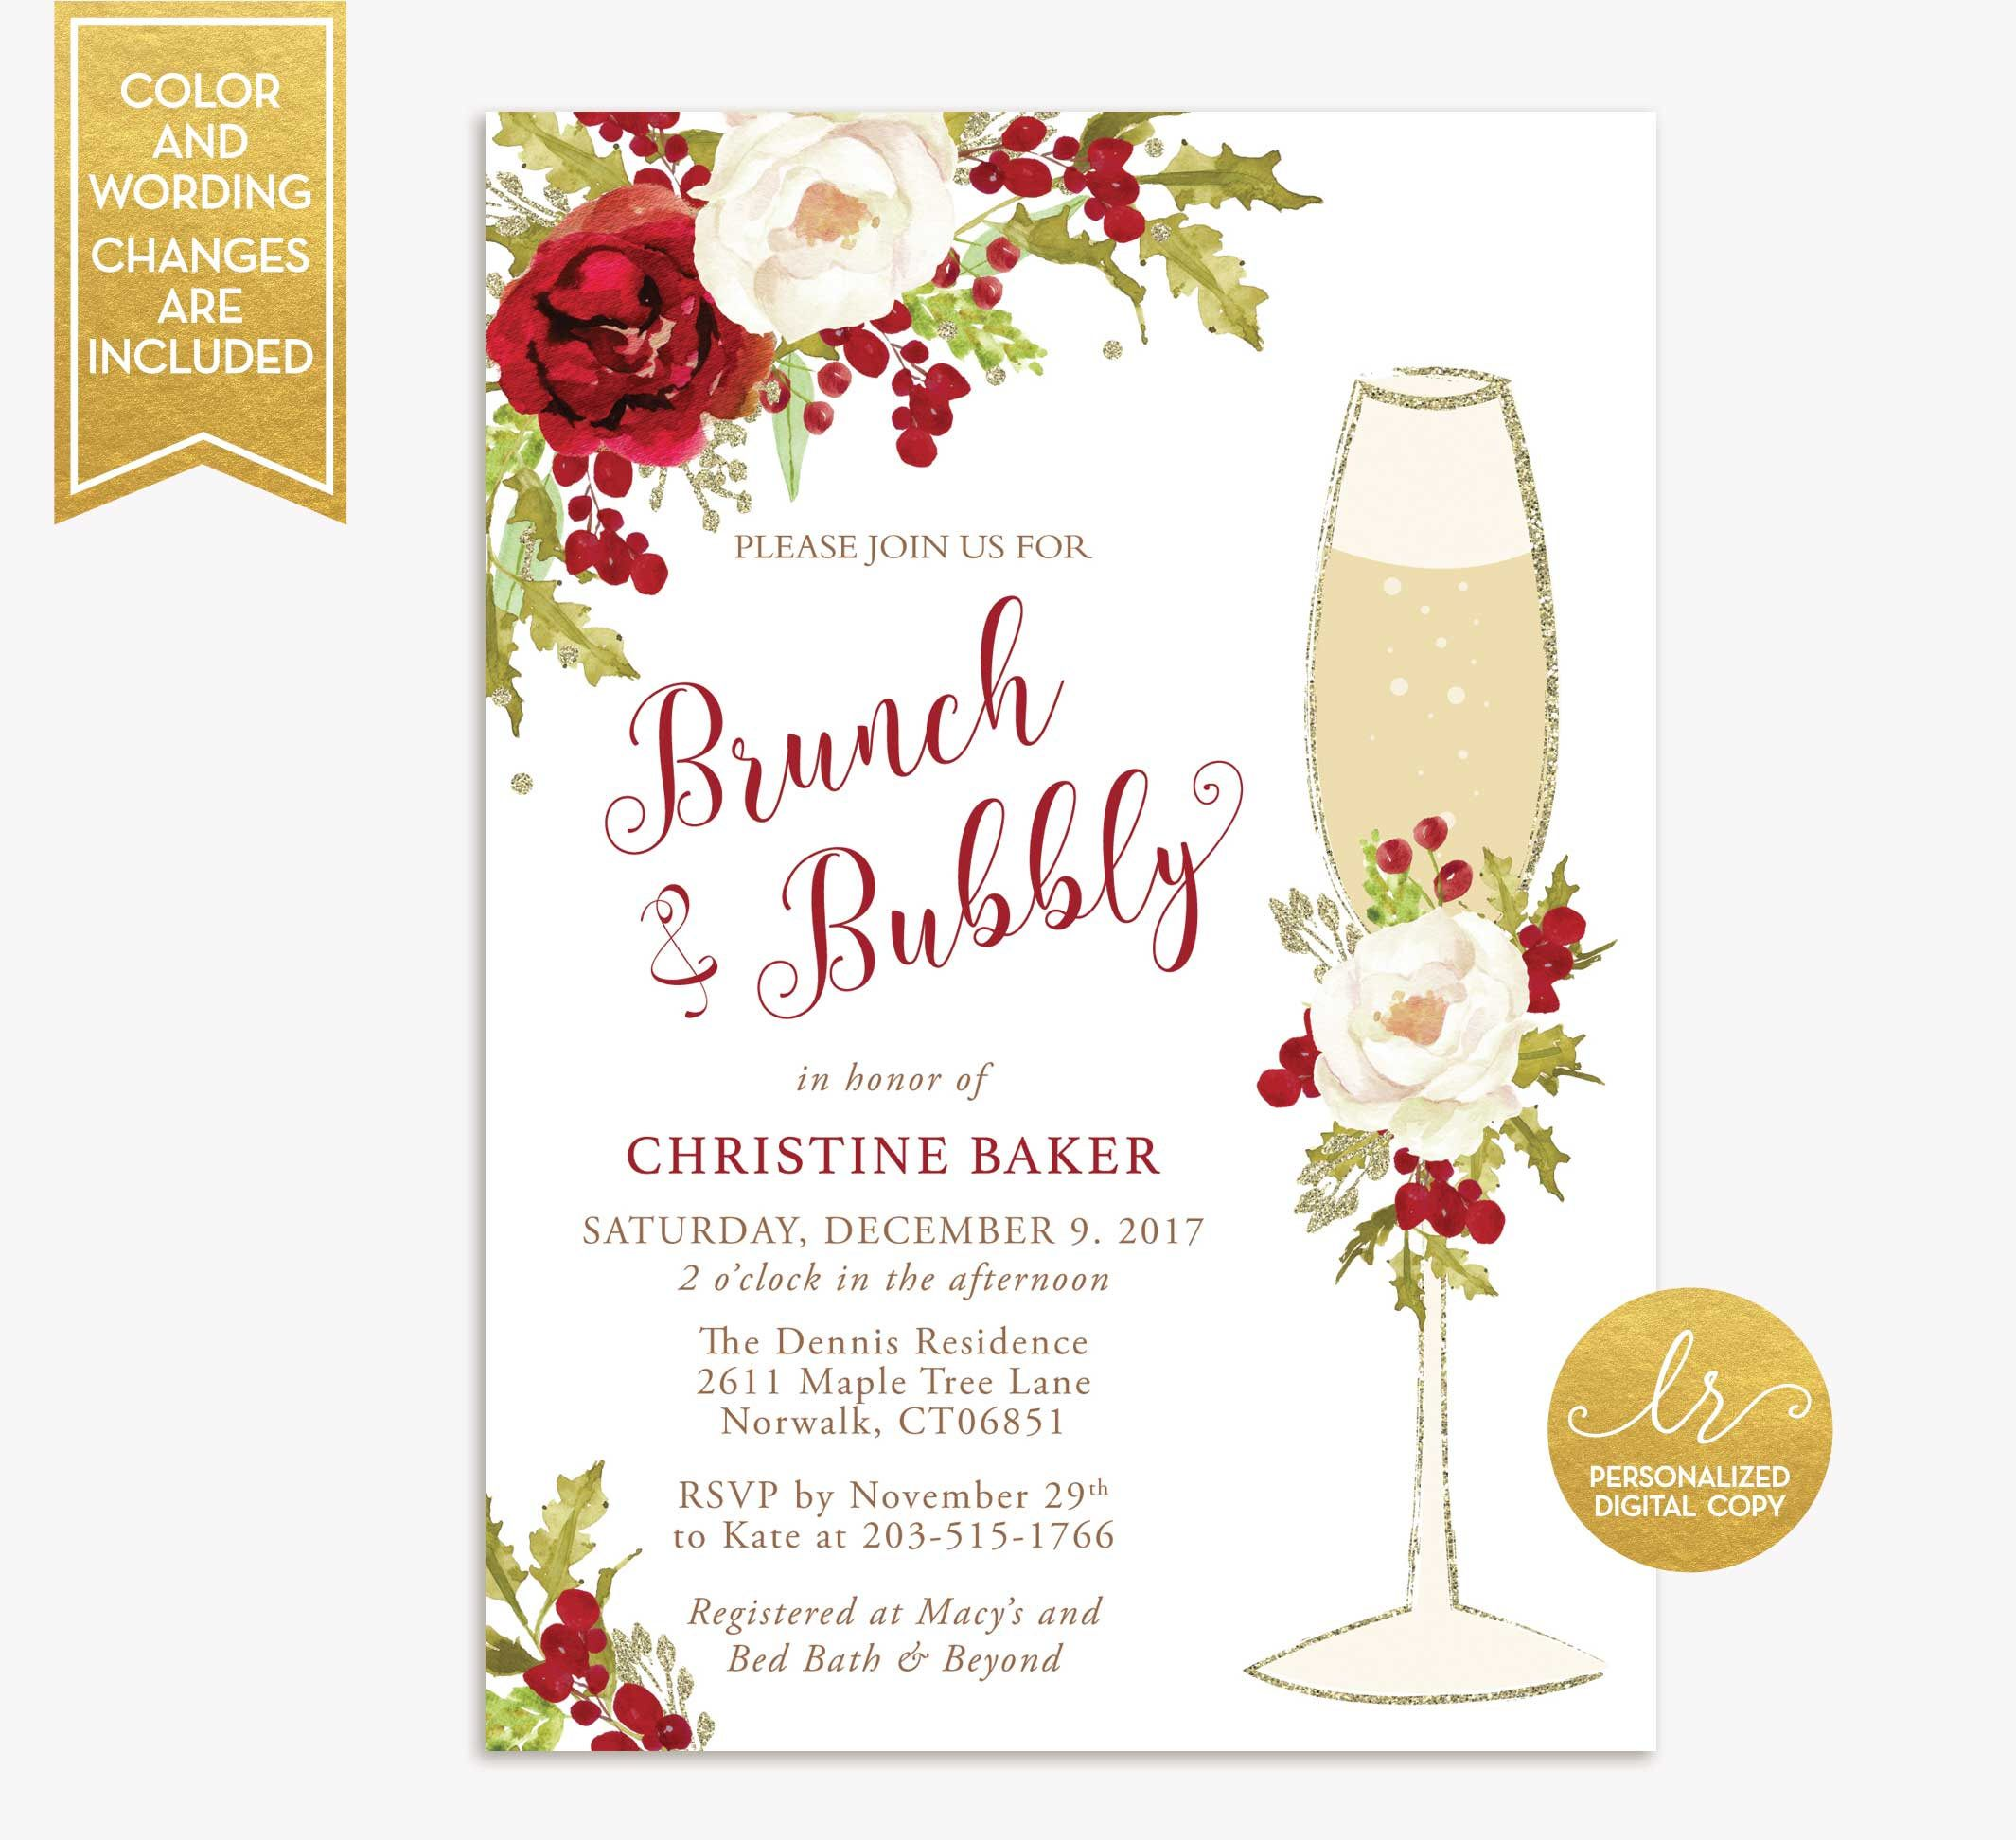 419182afe718 Winter Brunch and Bubbly Bridal Shower Invitation - Holiday Christmas  Brunch Invite - Floral Wedding Shower